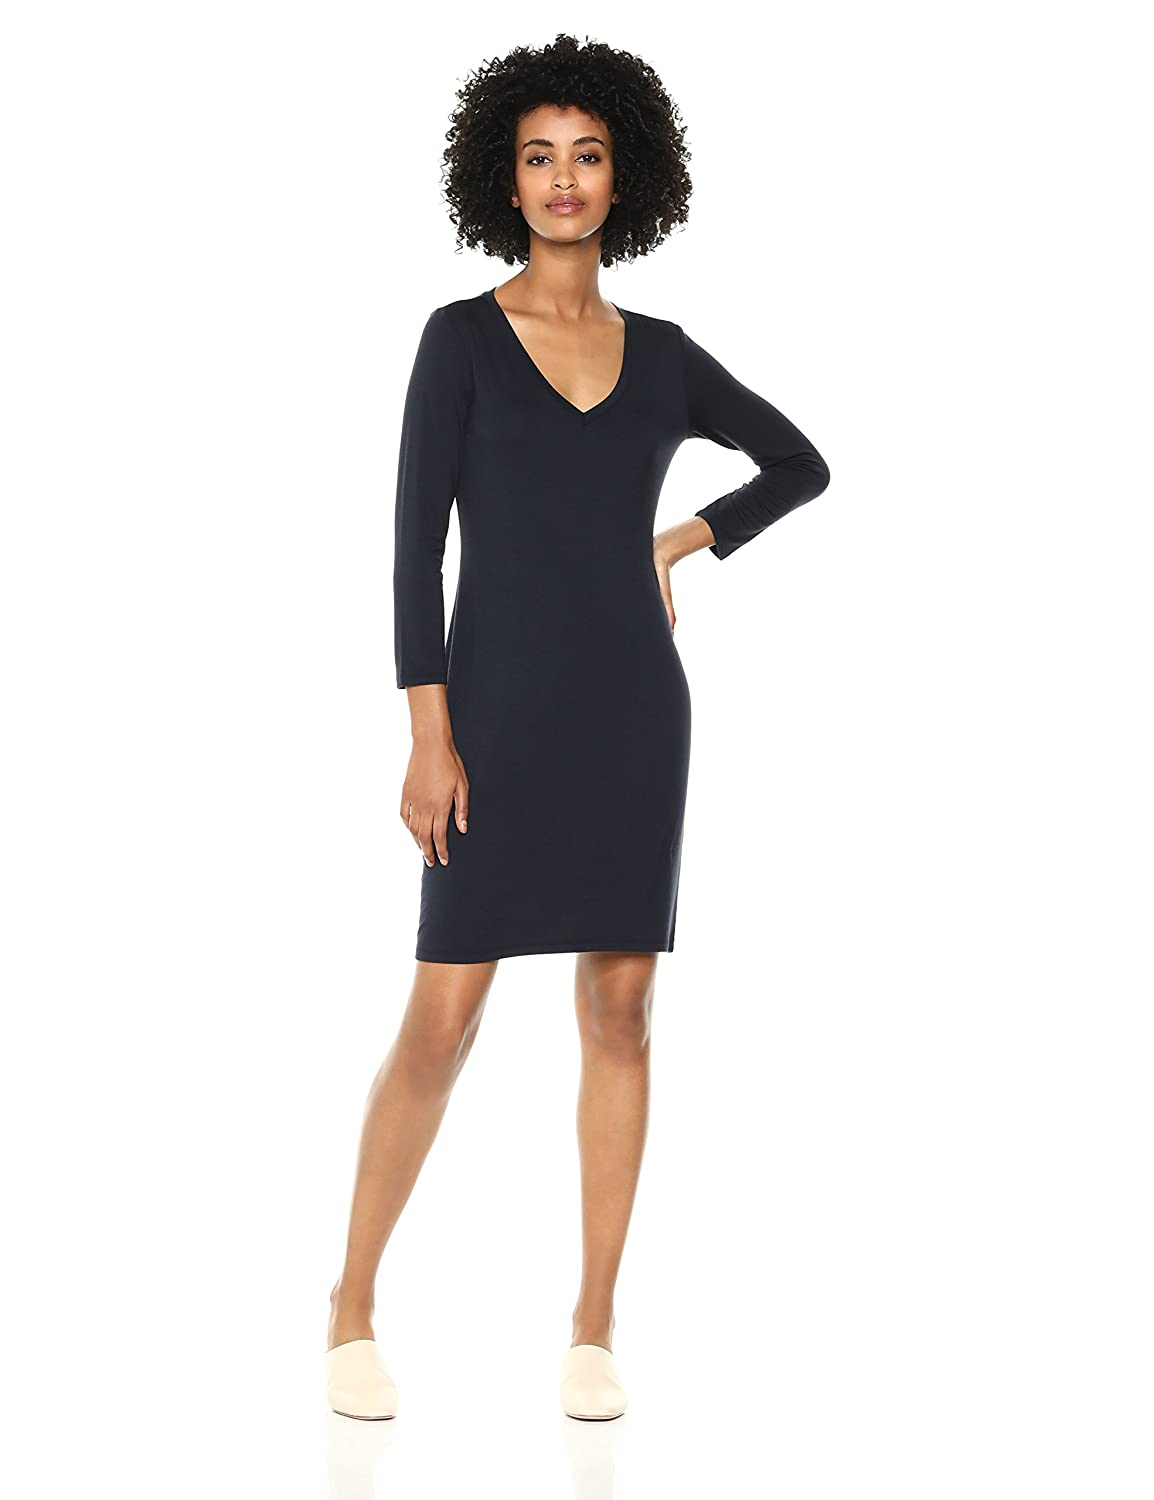 Daily Ritual Womens Standard Jersey 3/4-sleeve V-Neck T-Shirt Dress DRSB1004